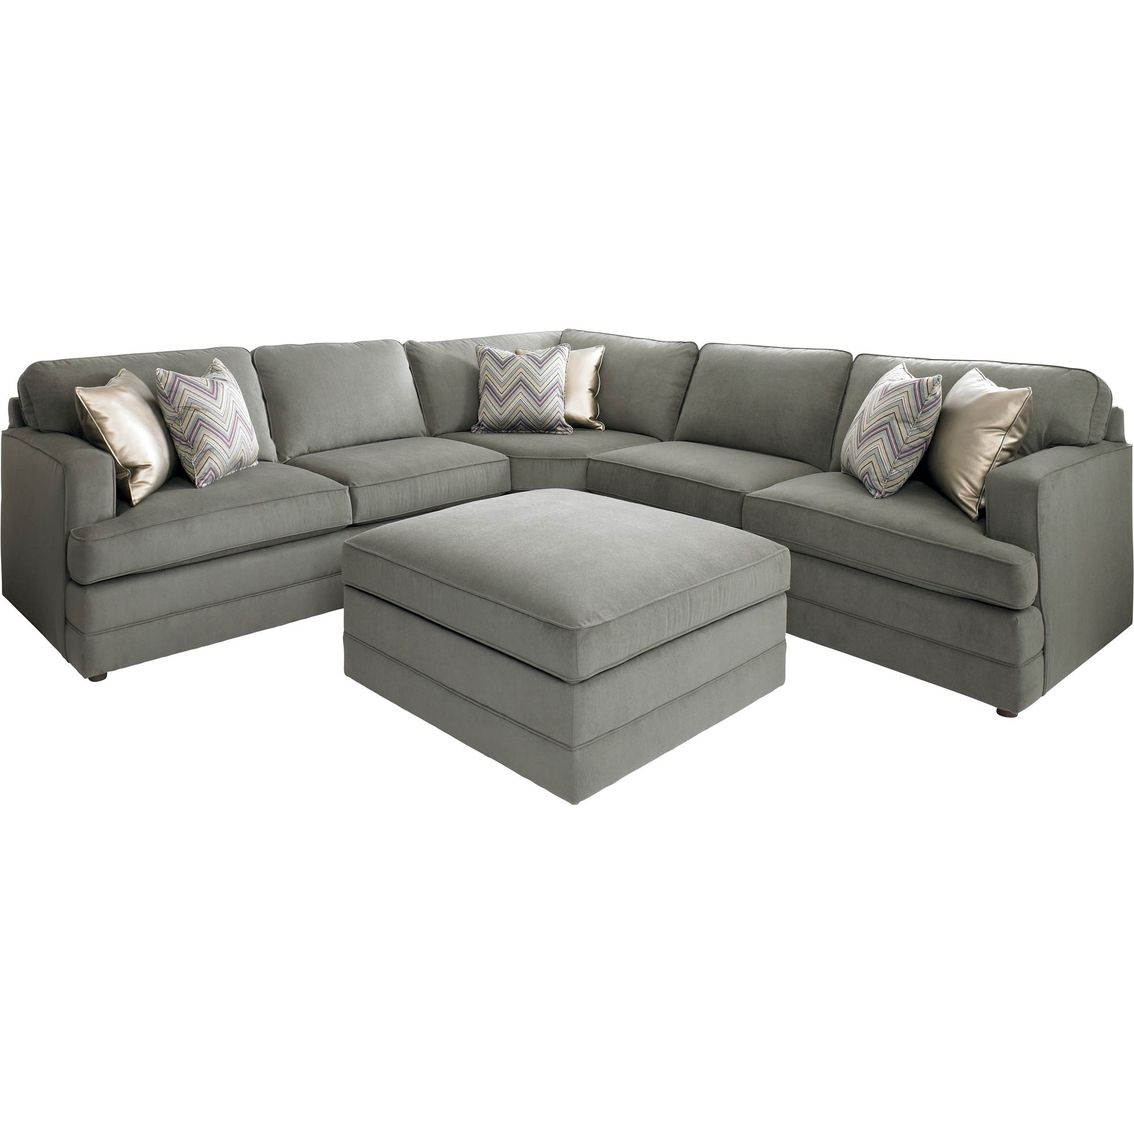 Bassett Dalton L Shaped Sectional Sofa With Ottoman Sectional